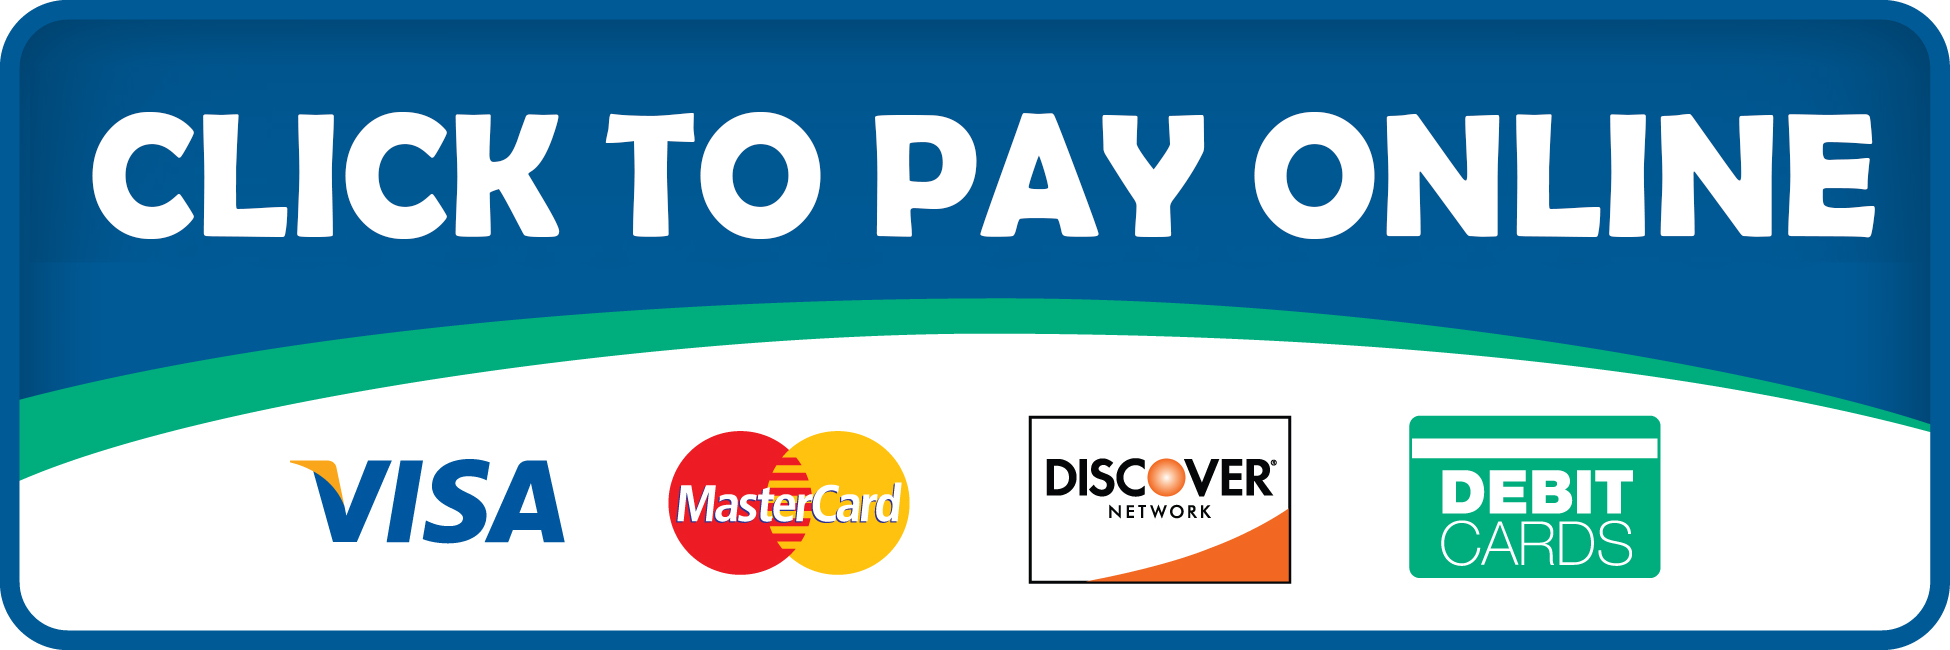 Click to Pay Online v1.png